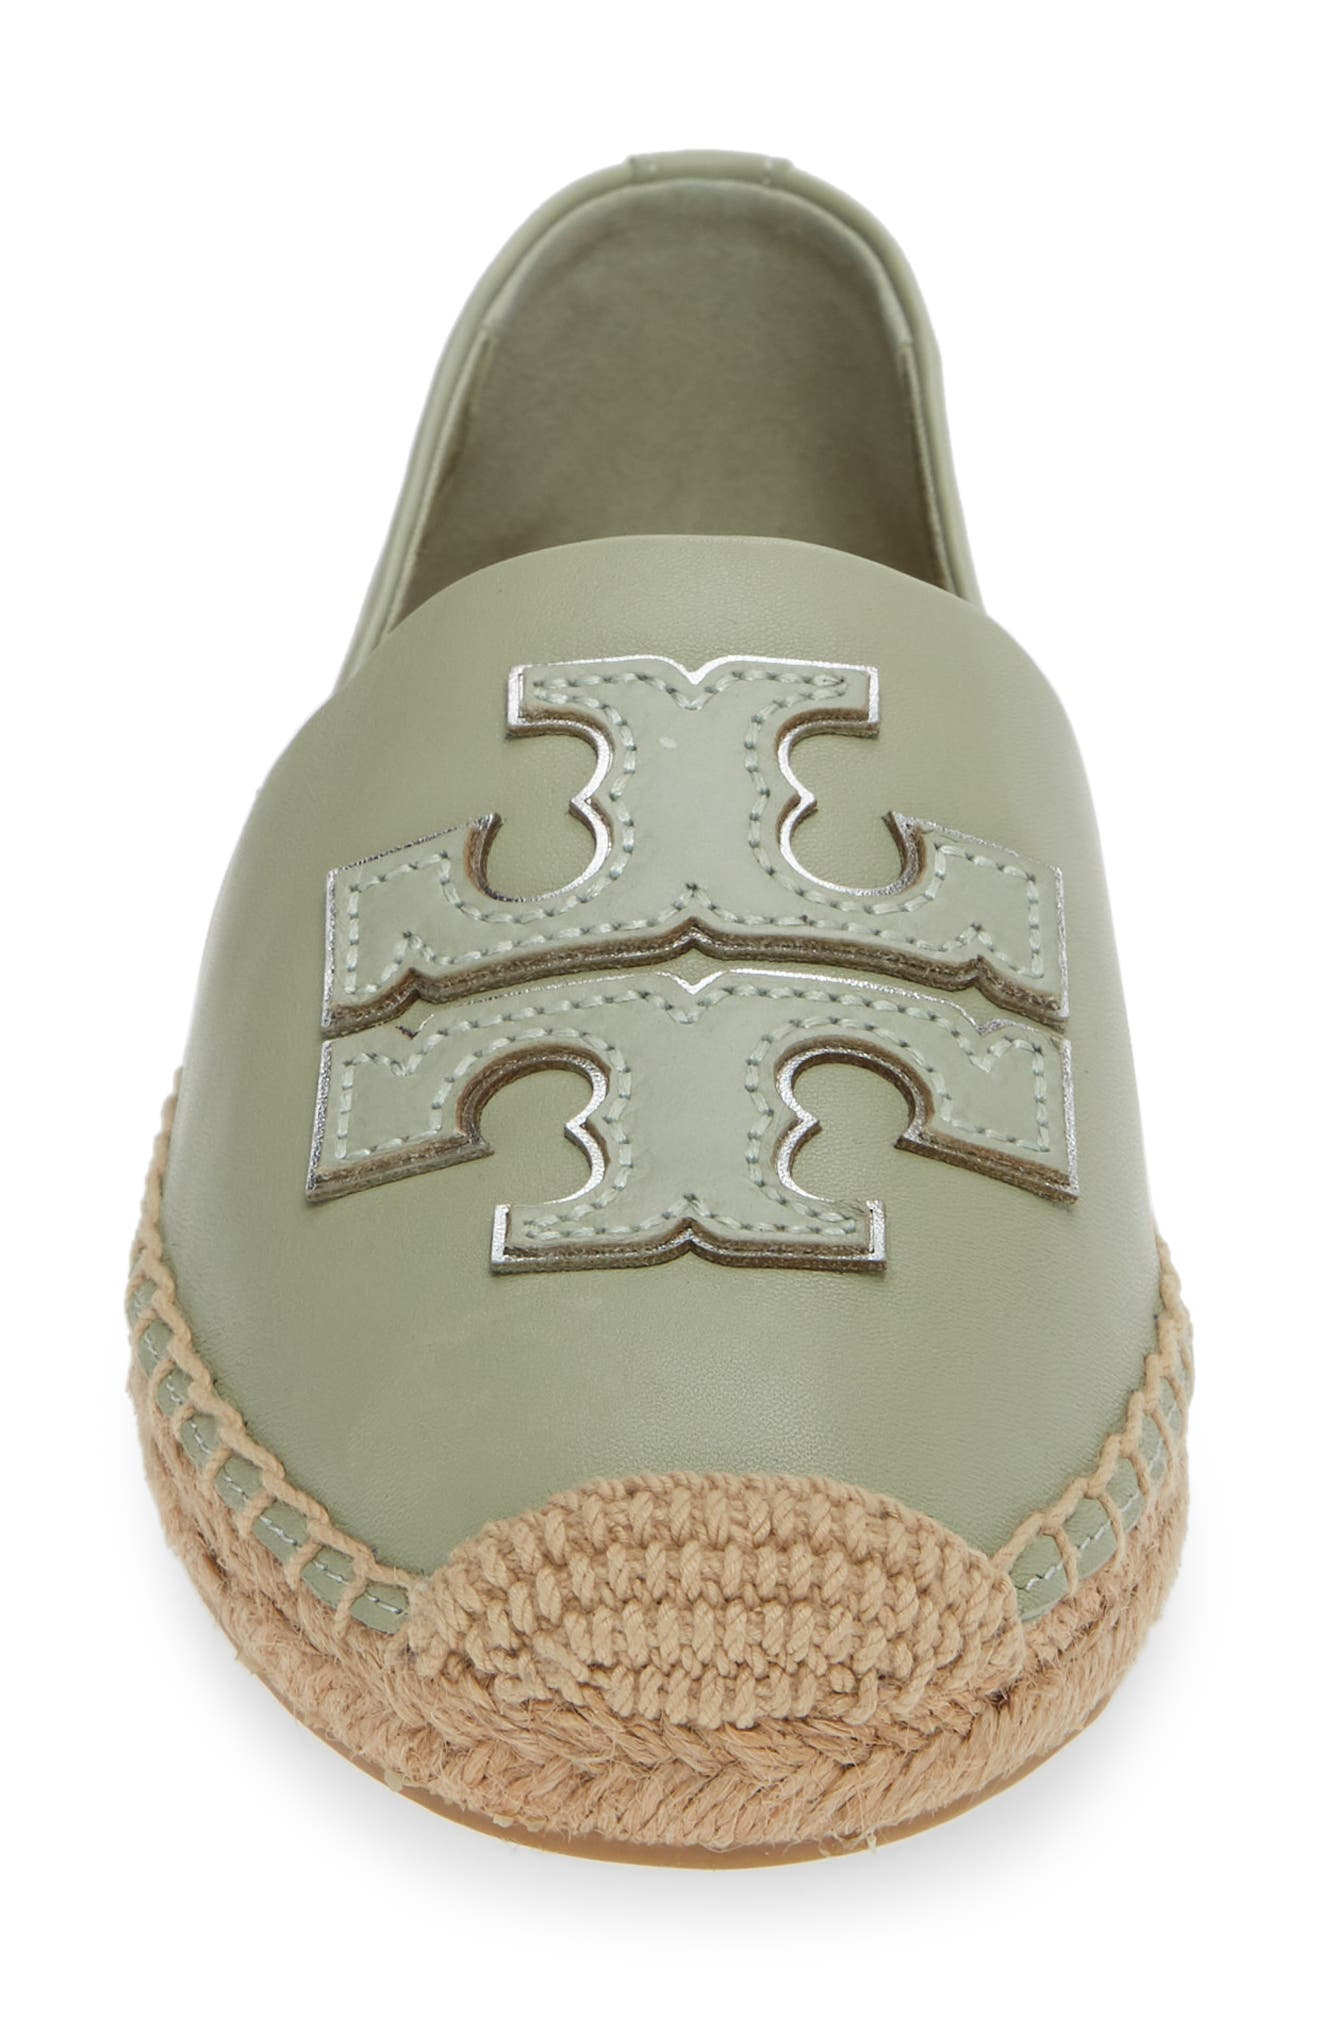 TORY BURCH, Ines Espadrille, Alternate thumbnail 4, color, GARDEN SAGE / SILVER